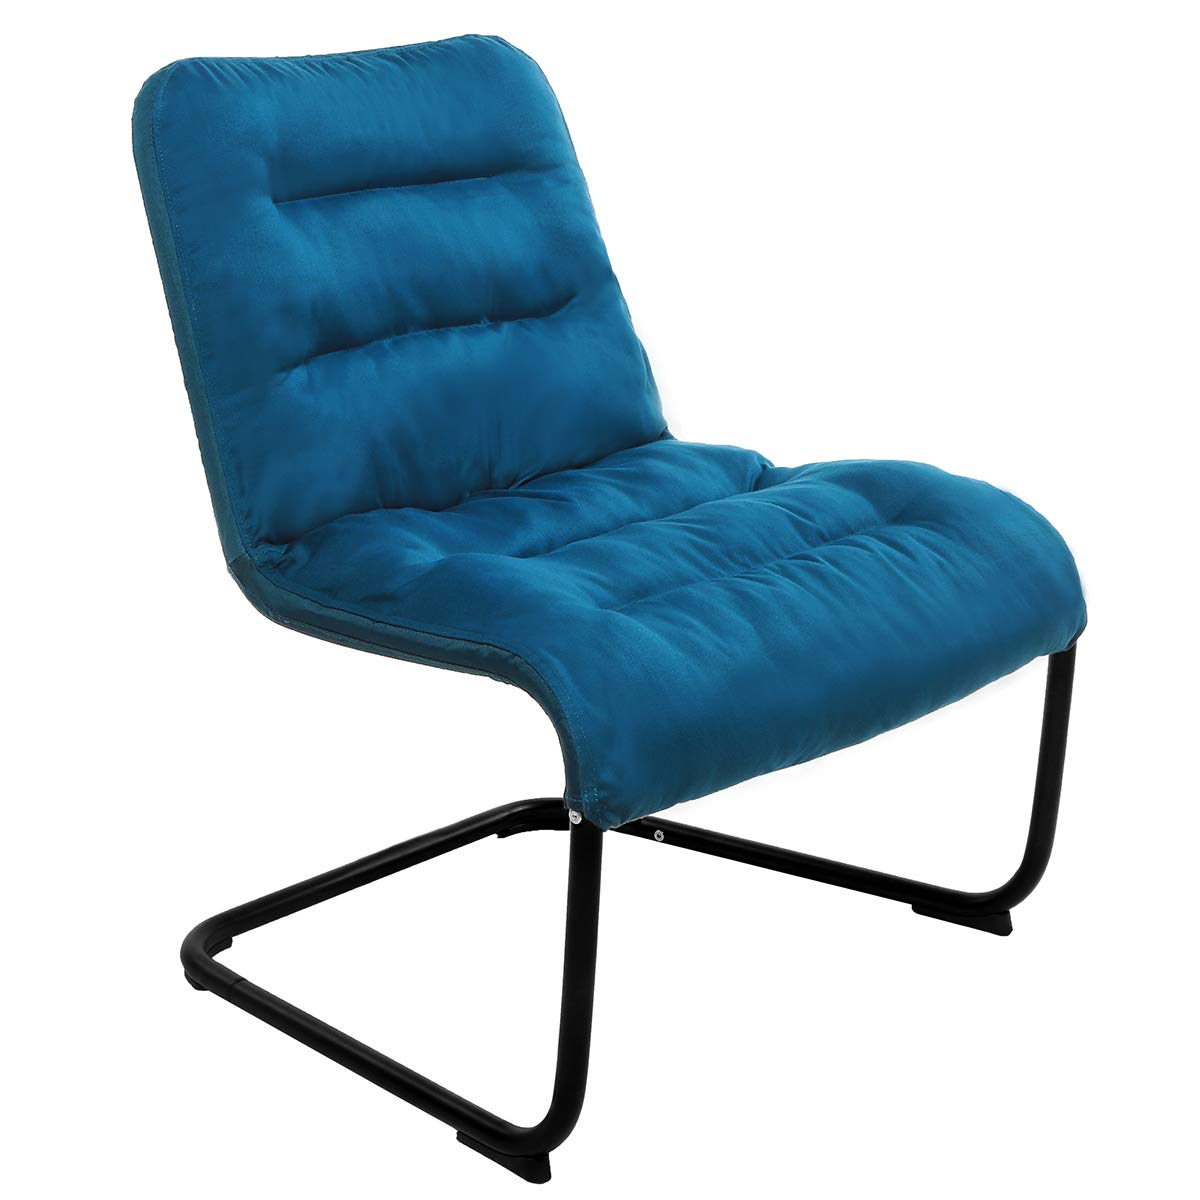 zenree comfortable bedroom chairs folding reading chair padded comfy lounge ebay. Black Bedroom Furniture Sets. Home Design Ideas